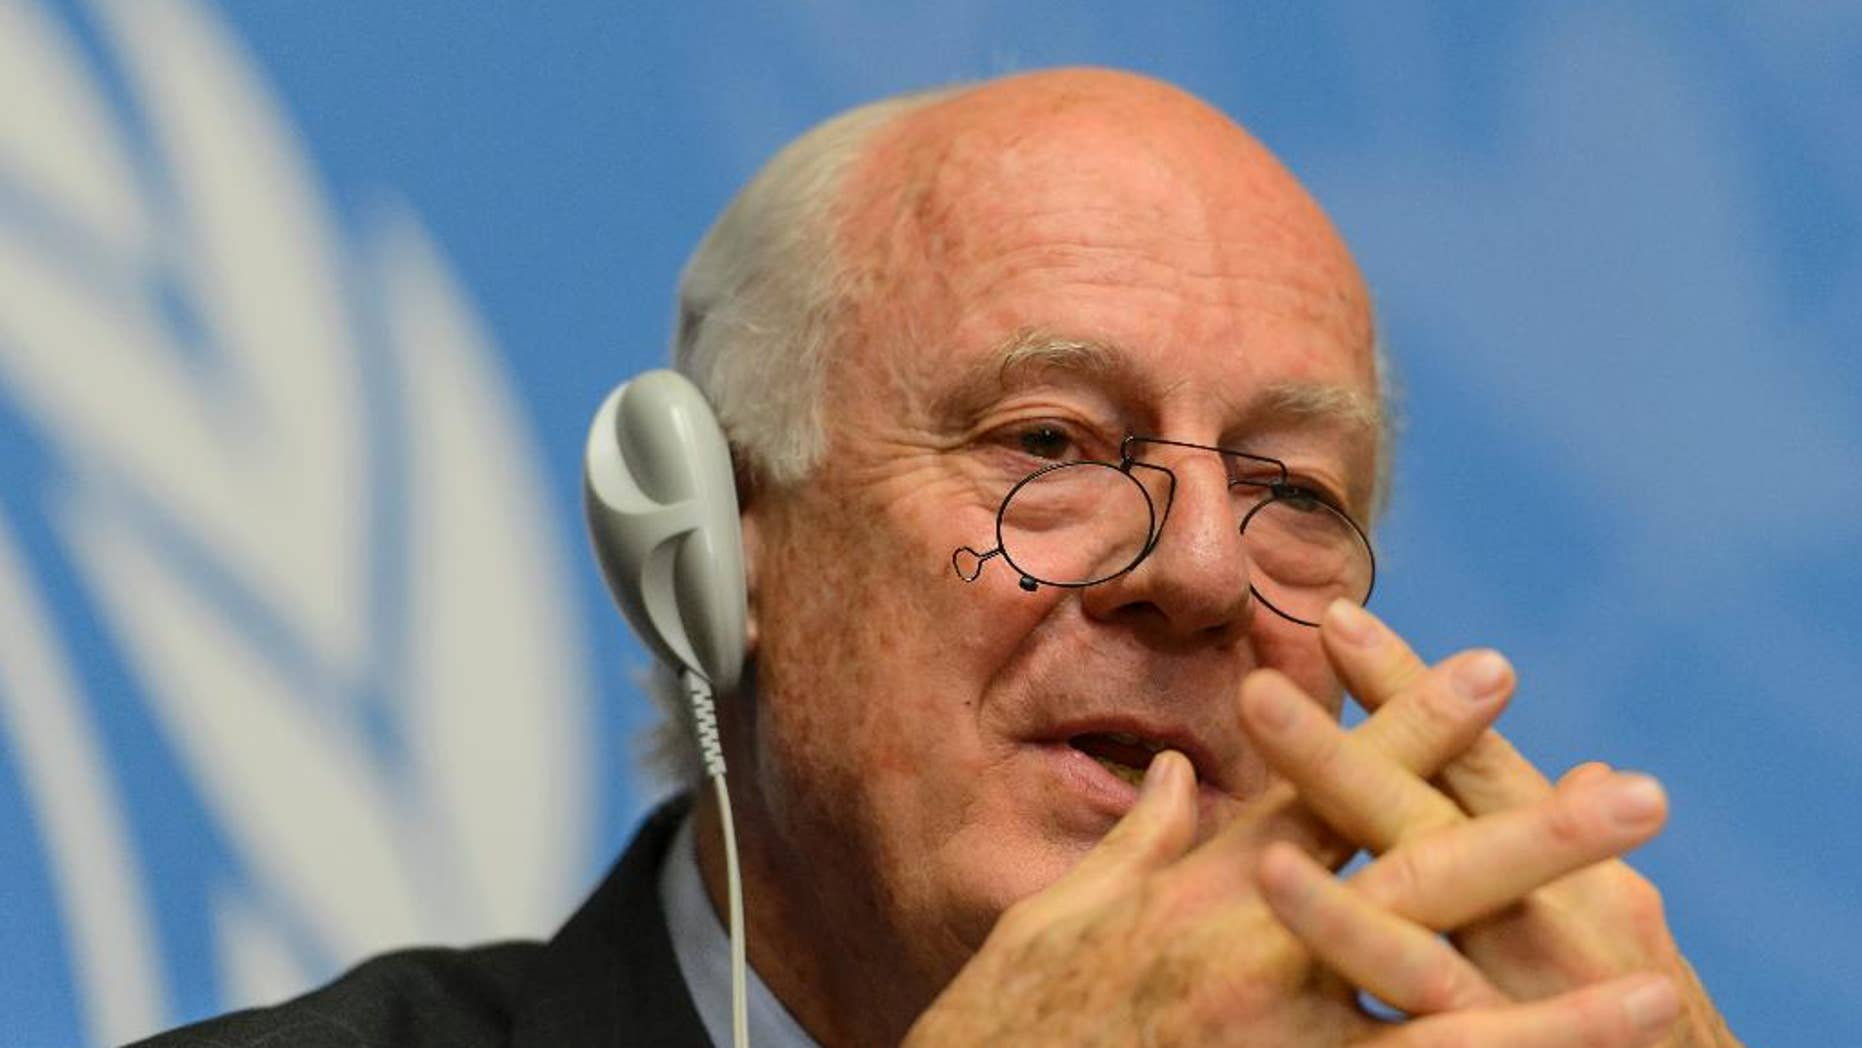 The UN Special Envoy of the Secretary General for Syria Staffan de Mistura speaks during a press conference on the situation in Syria at the European headquarters of the United Nations in Geneva, Switzerland, Tuesday, May 5, 2015. (Jean-Christophe Bott/Keystone via AP)